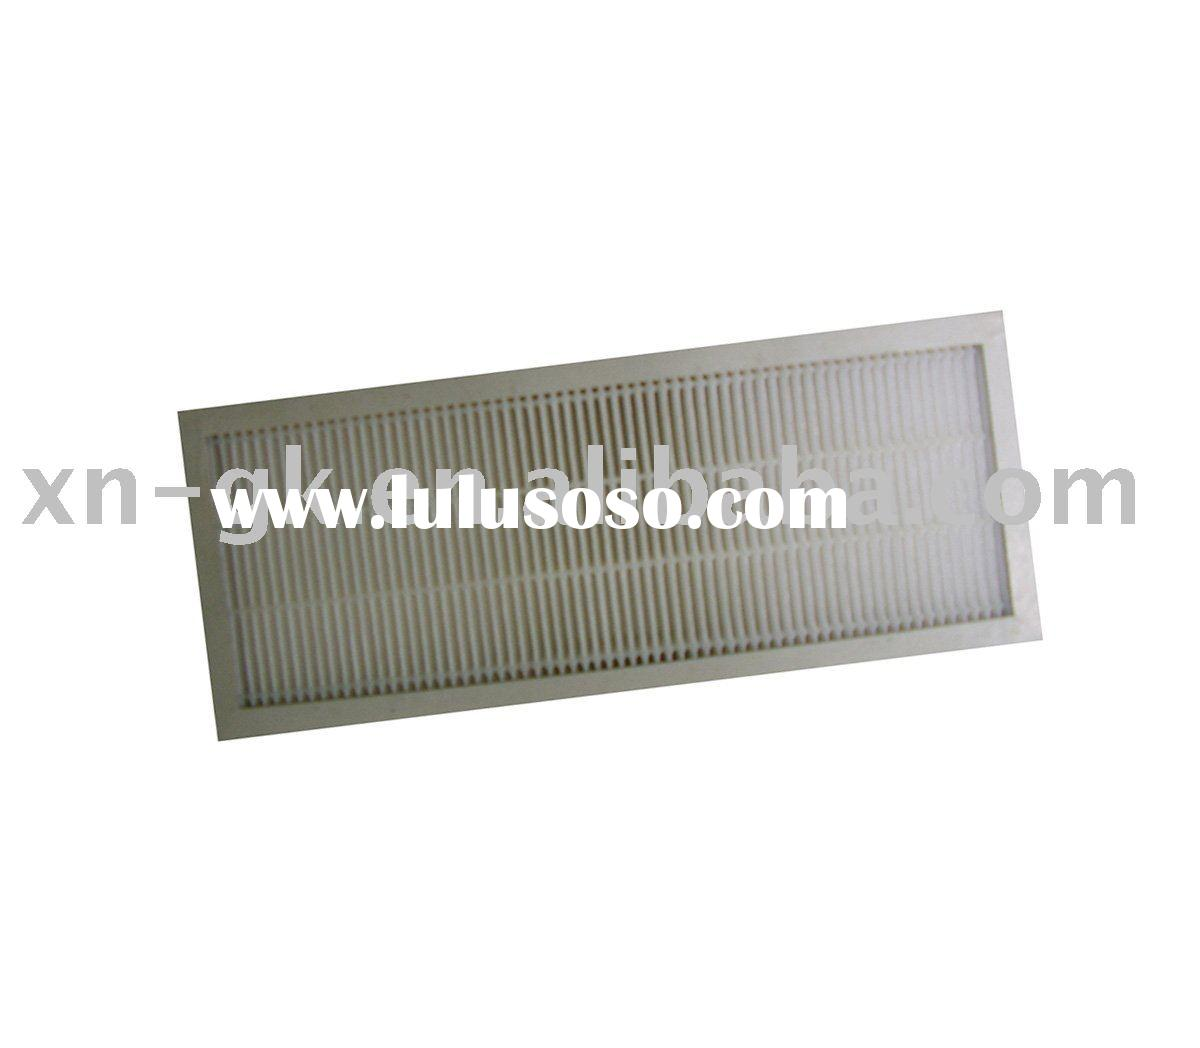 Air cleaner HEPA filter